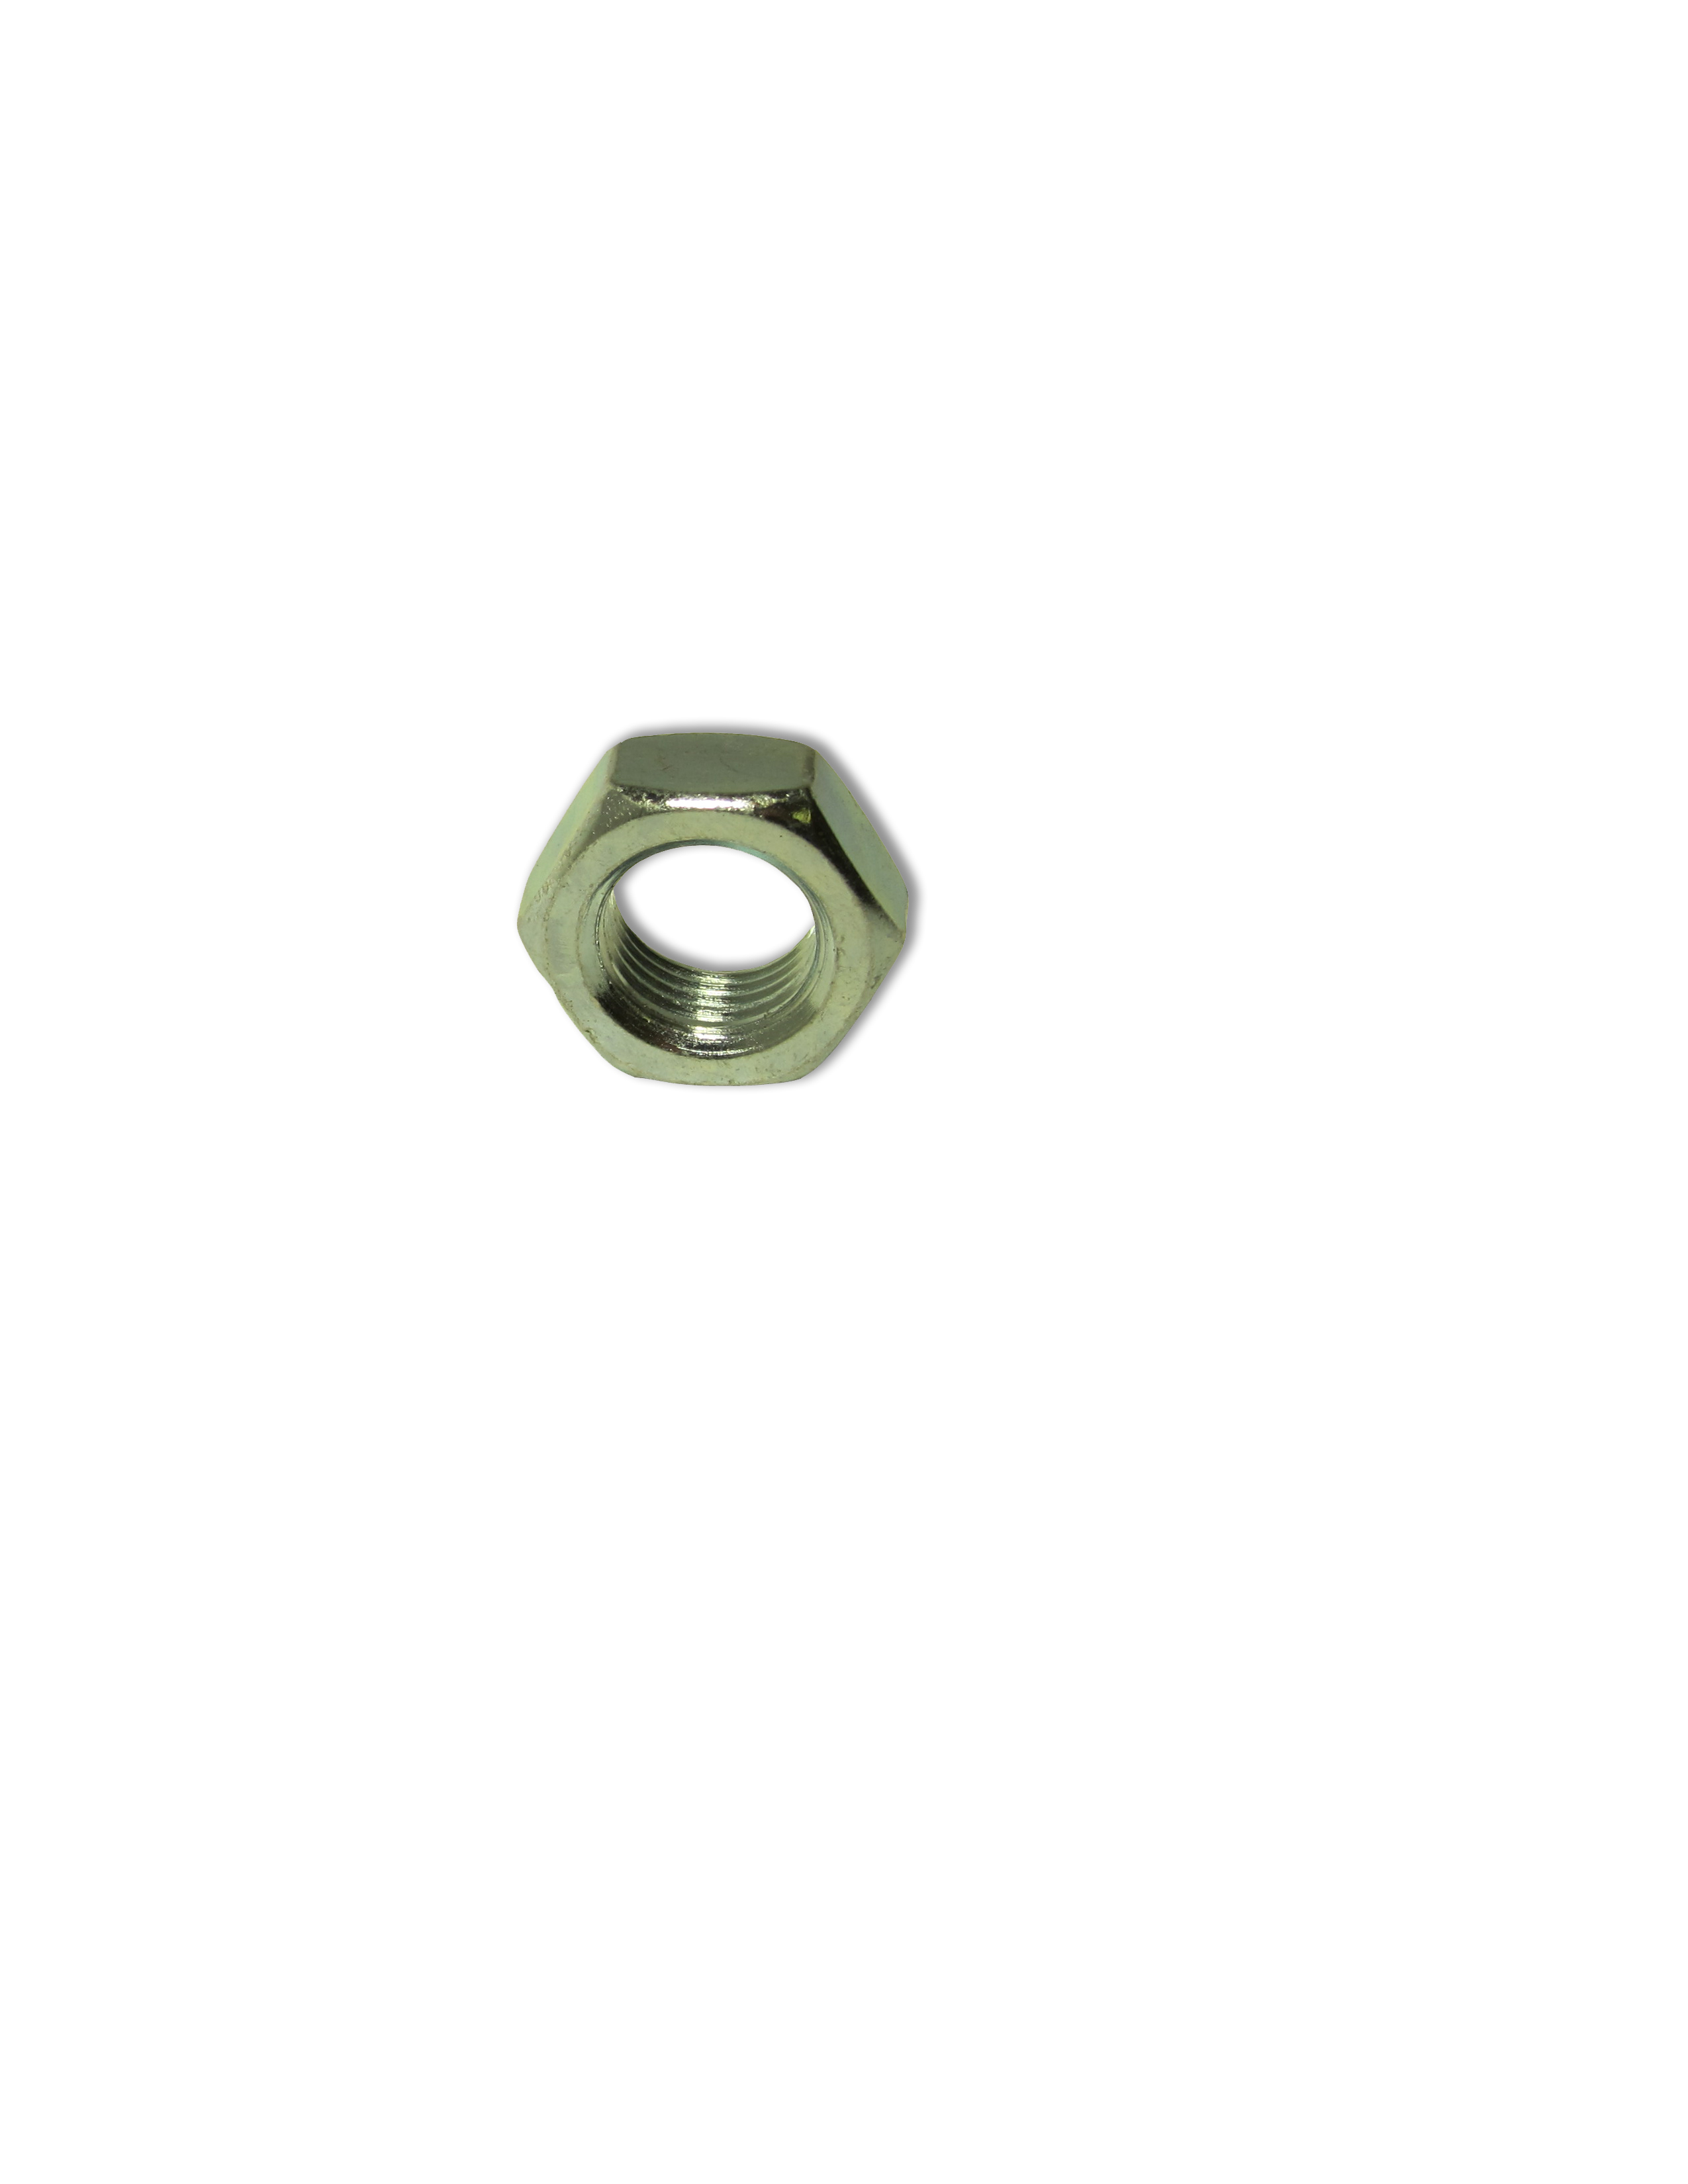 537-024 K7B & K8B Abrasive Chop Saw Spindle Nut, K7B & K8B Abrasive Chop Saw Spindle Nut, Abrasive Chop Saw Spindle Nut, Chop Saw Spindle Nut, 537-024 K7B & K8B, 7 inch Saw Spindle Nut. 7 inch chop saw spindle nut, 8 inch saw spindle nut. 8 inch abrasive saw spindle nut, 7 inch spindle nut, 8 inch chop saw spindle nut, 8 inch saw nut